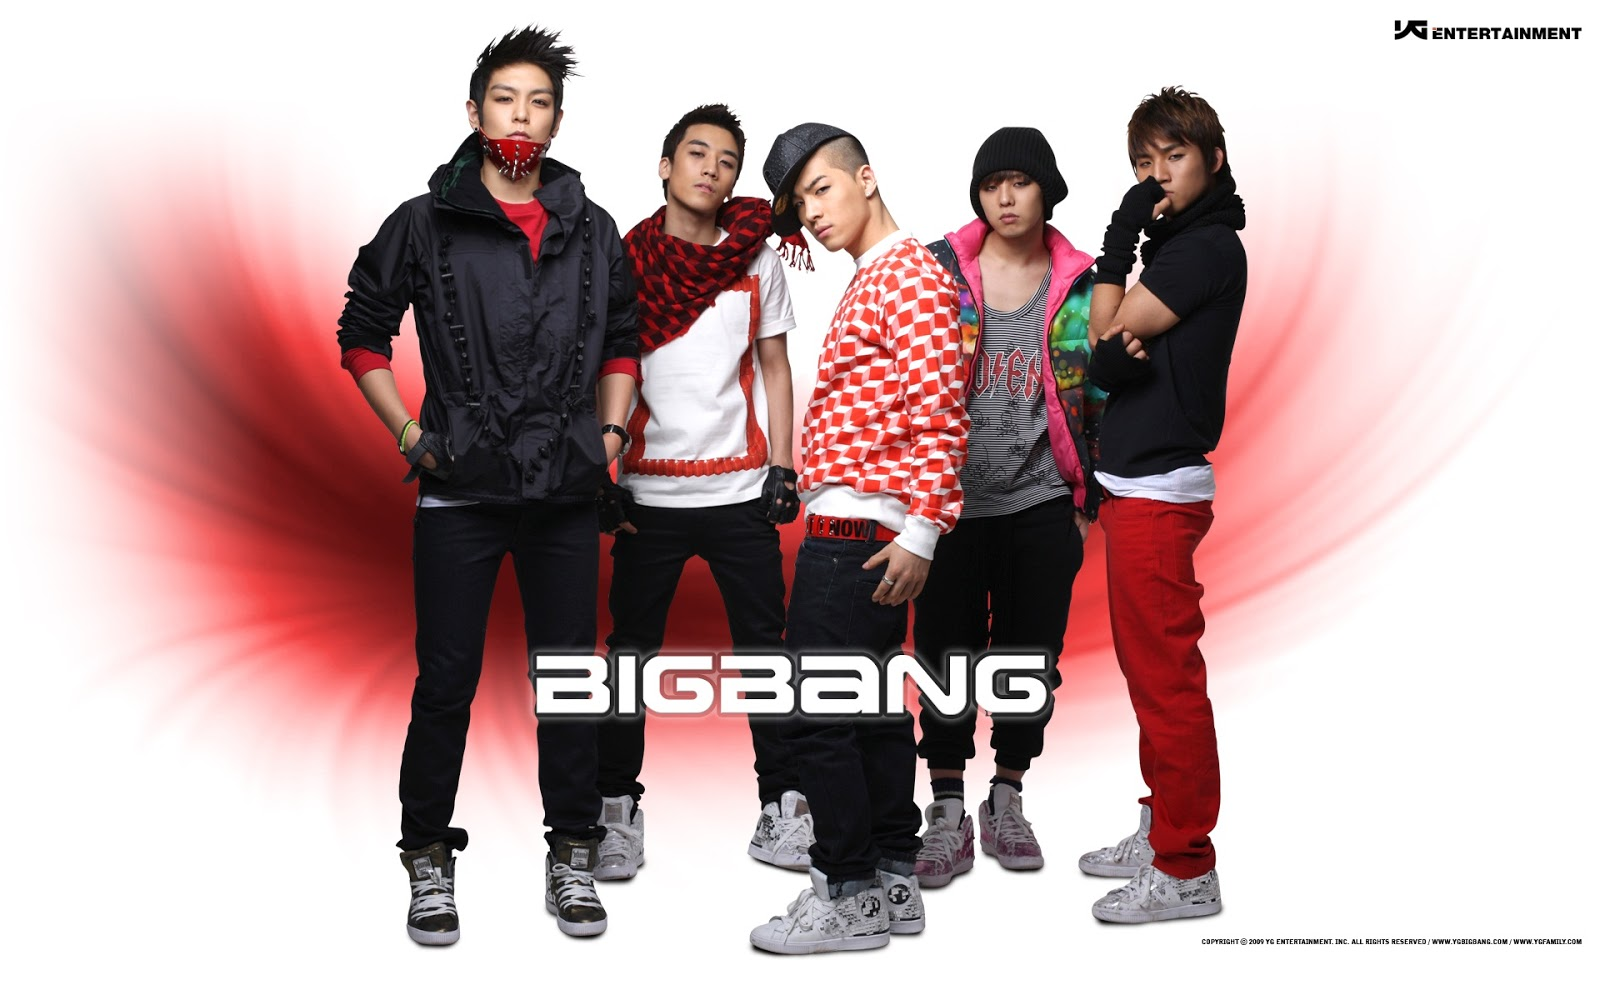 big bang 빅뱅 bigbang wallpaper hd 4 big bang 빅뱅